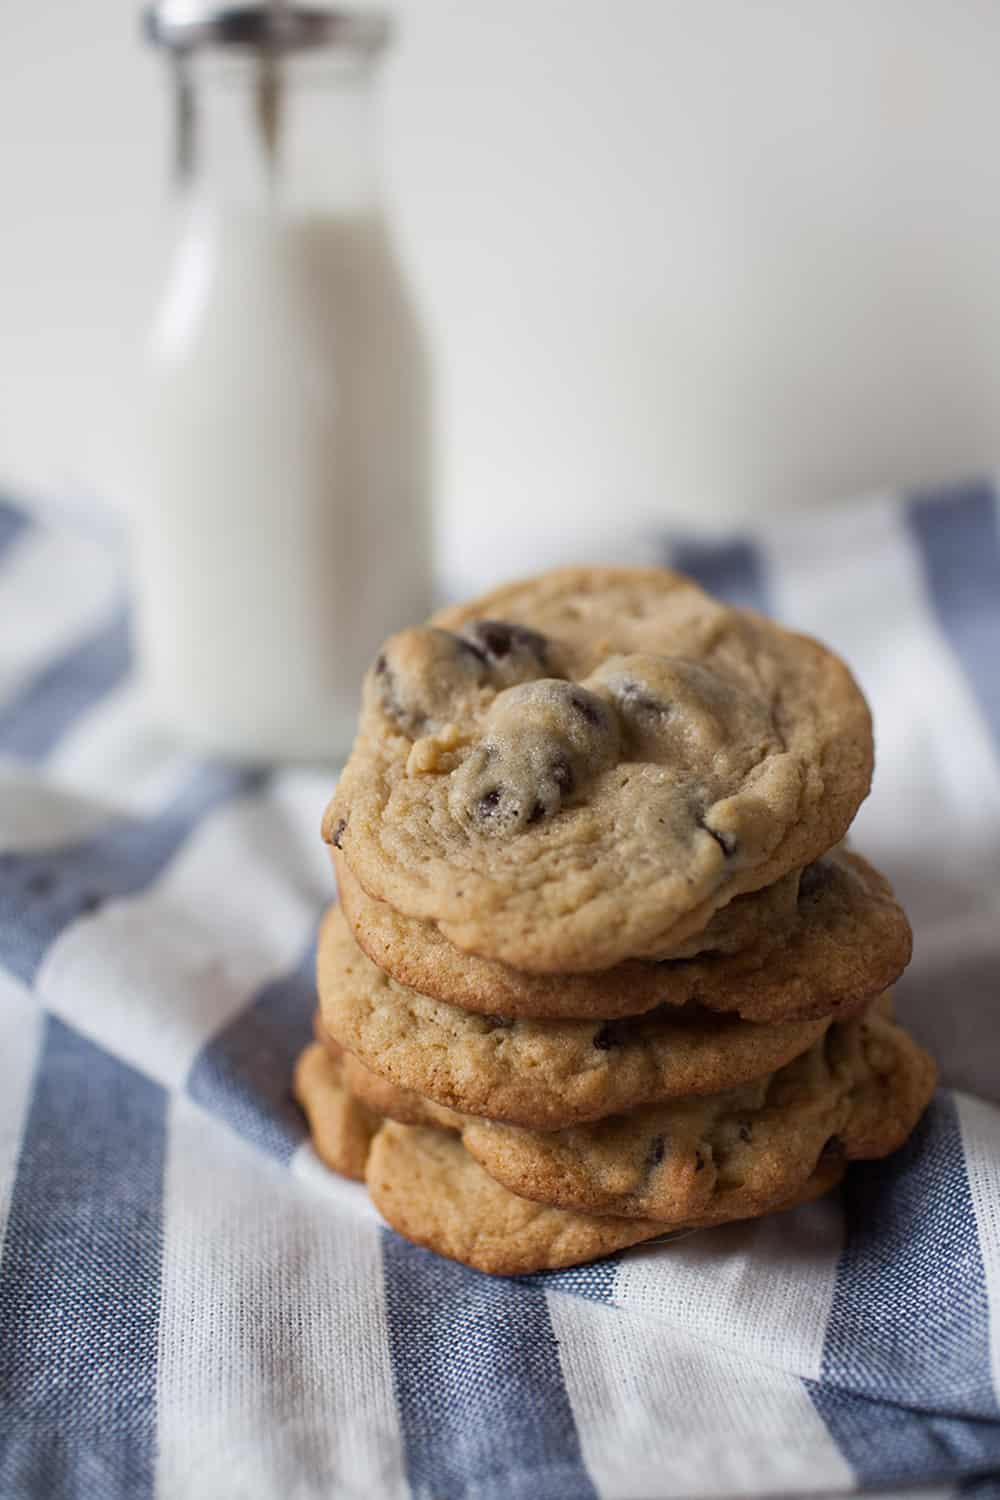 The best chocolate chip cookie recipe! This secret ingredient makes this cookies the perfect combination of soft and chewy, but crispy too!